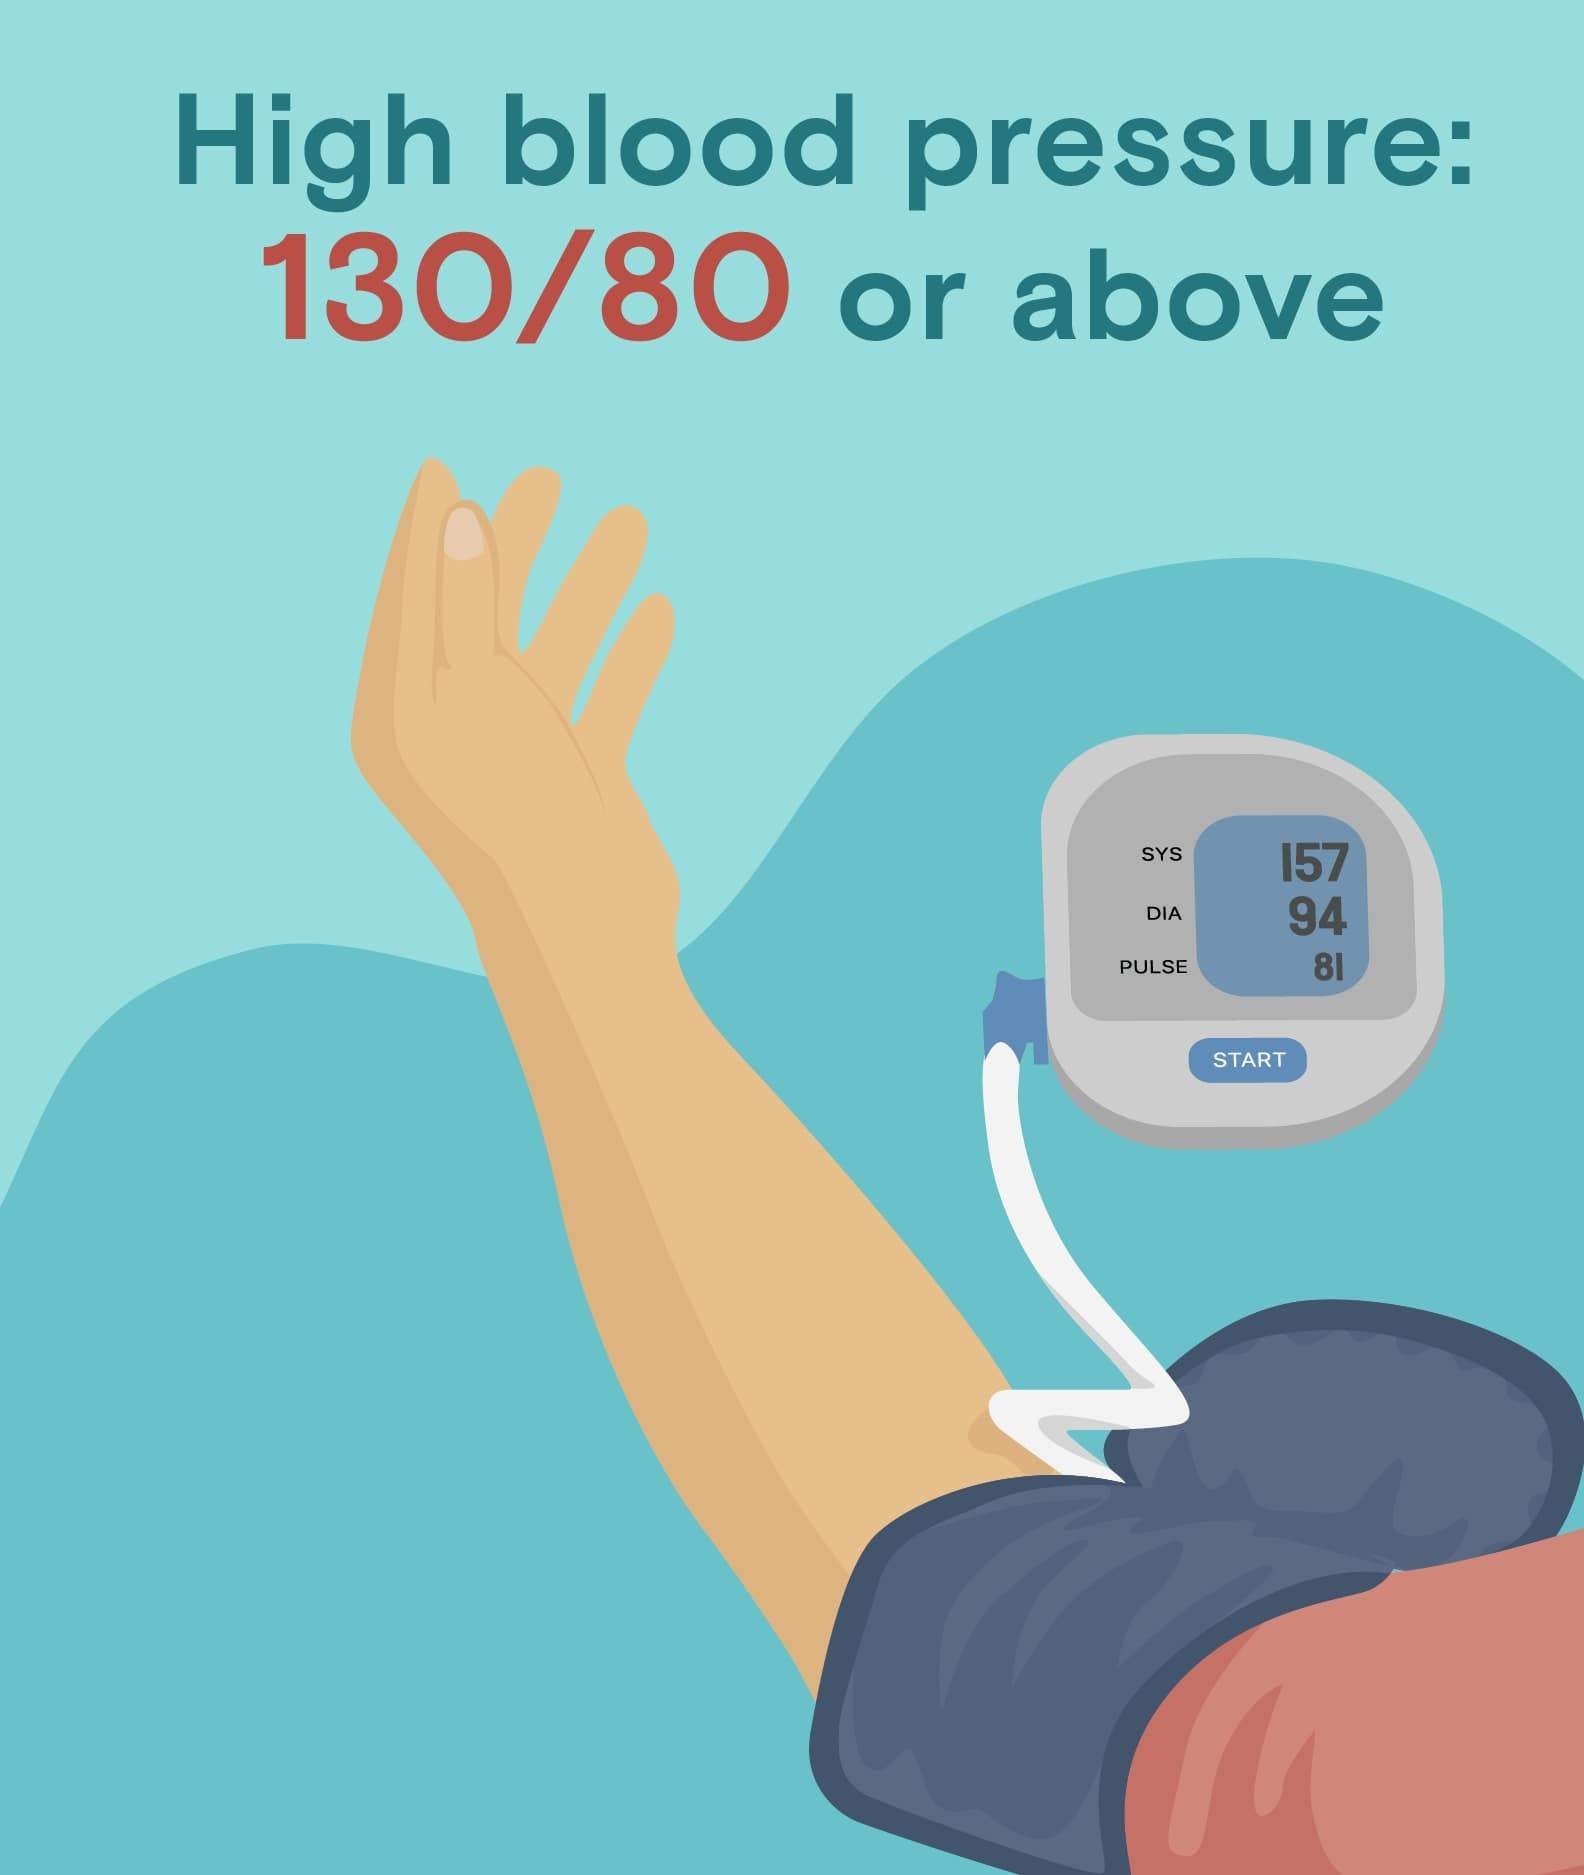 intermittent fasting can lower high blood pressure (130/80)